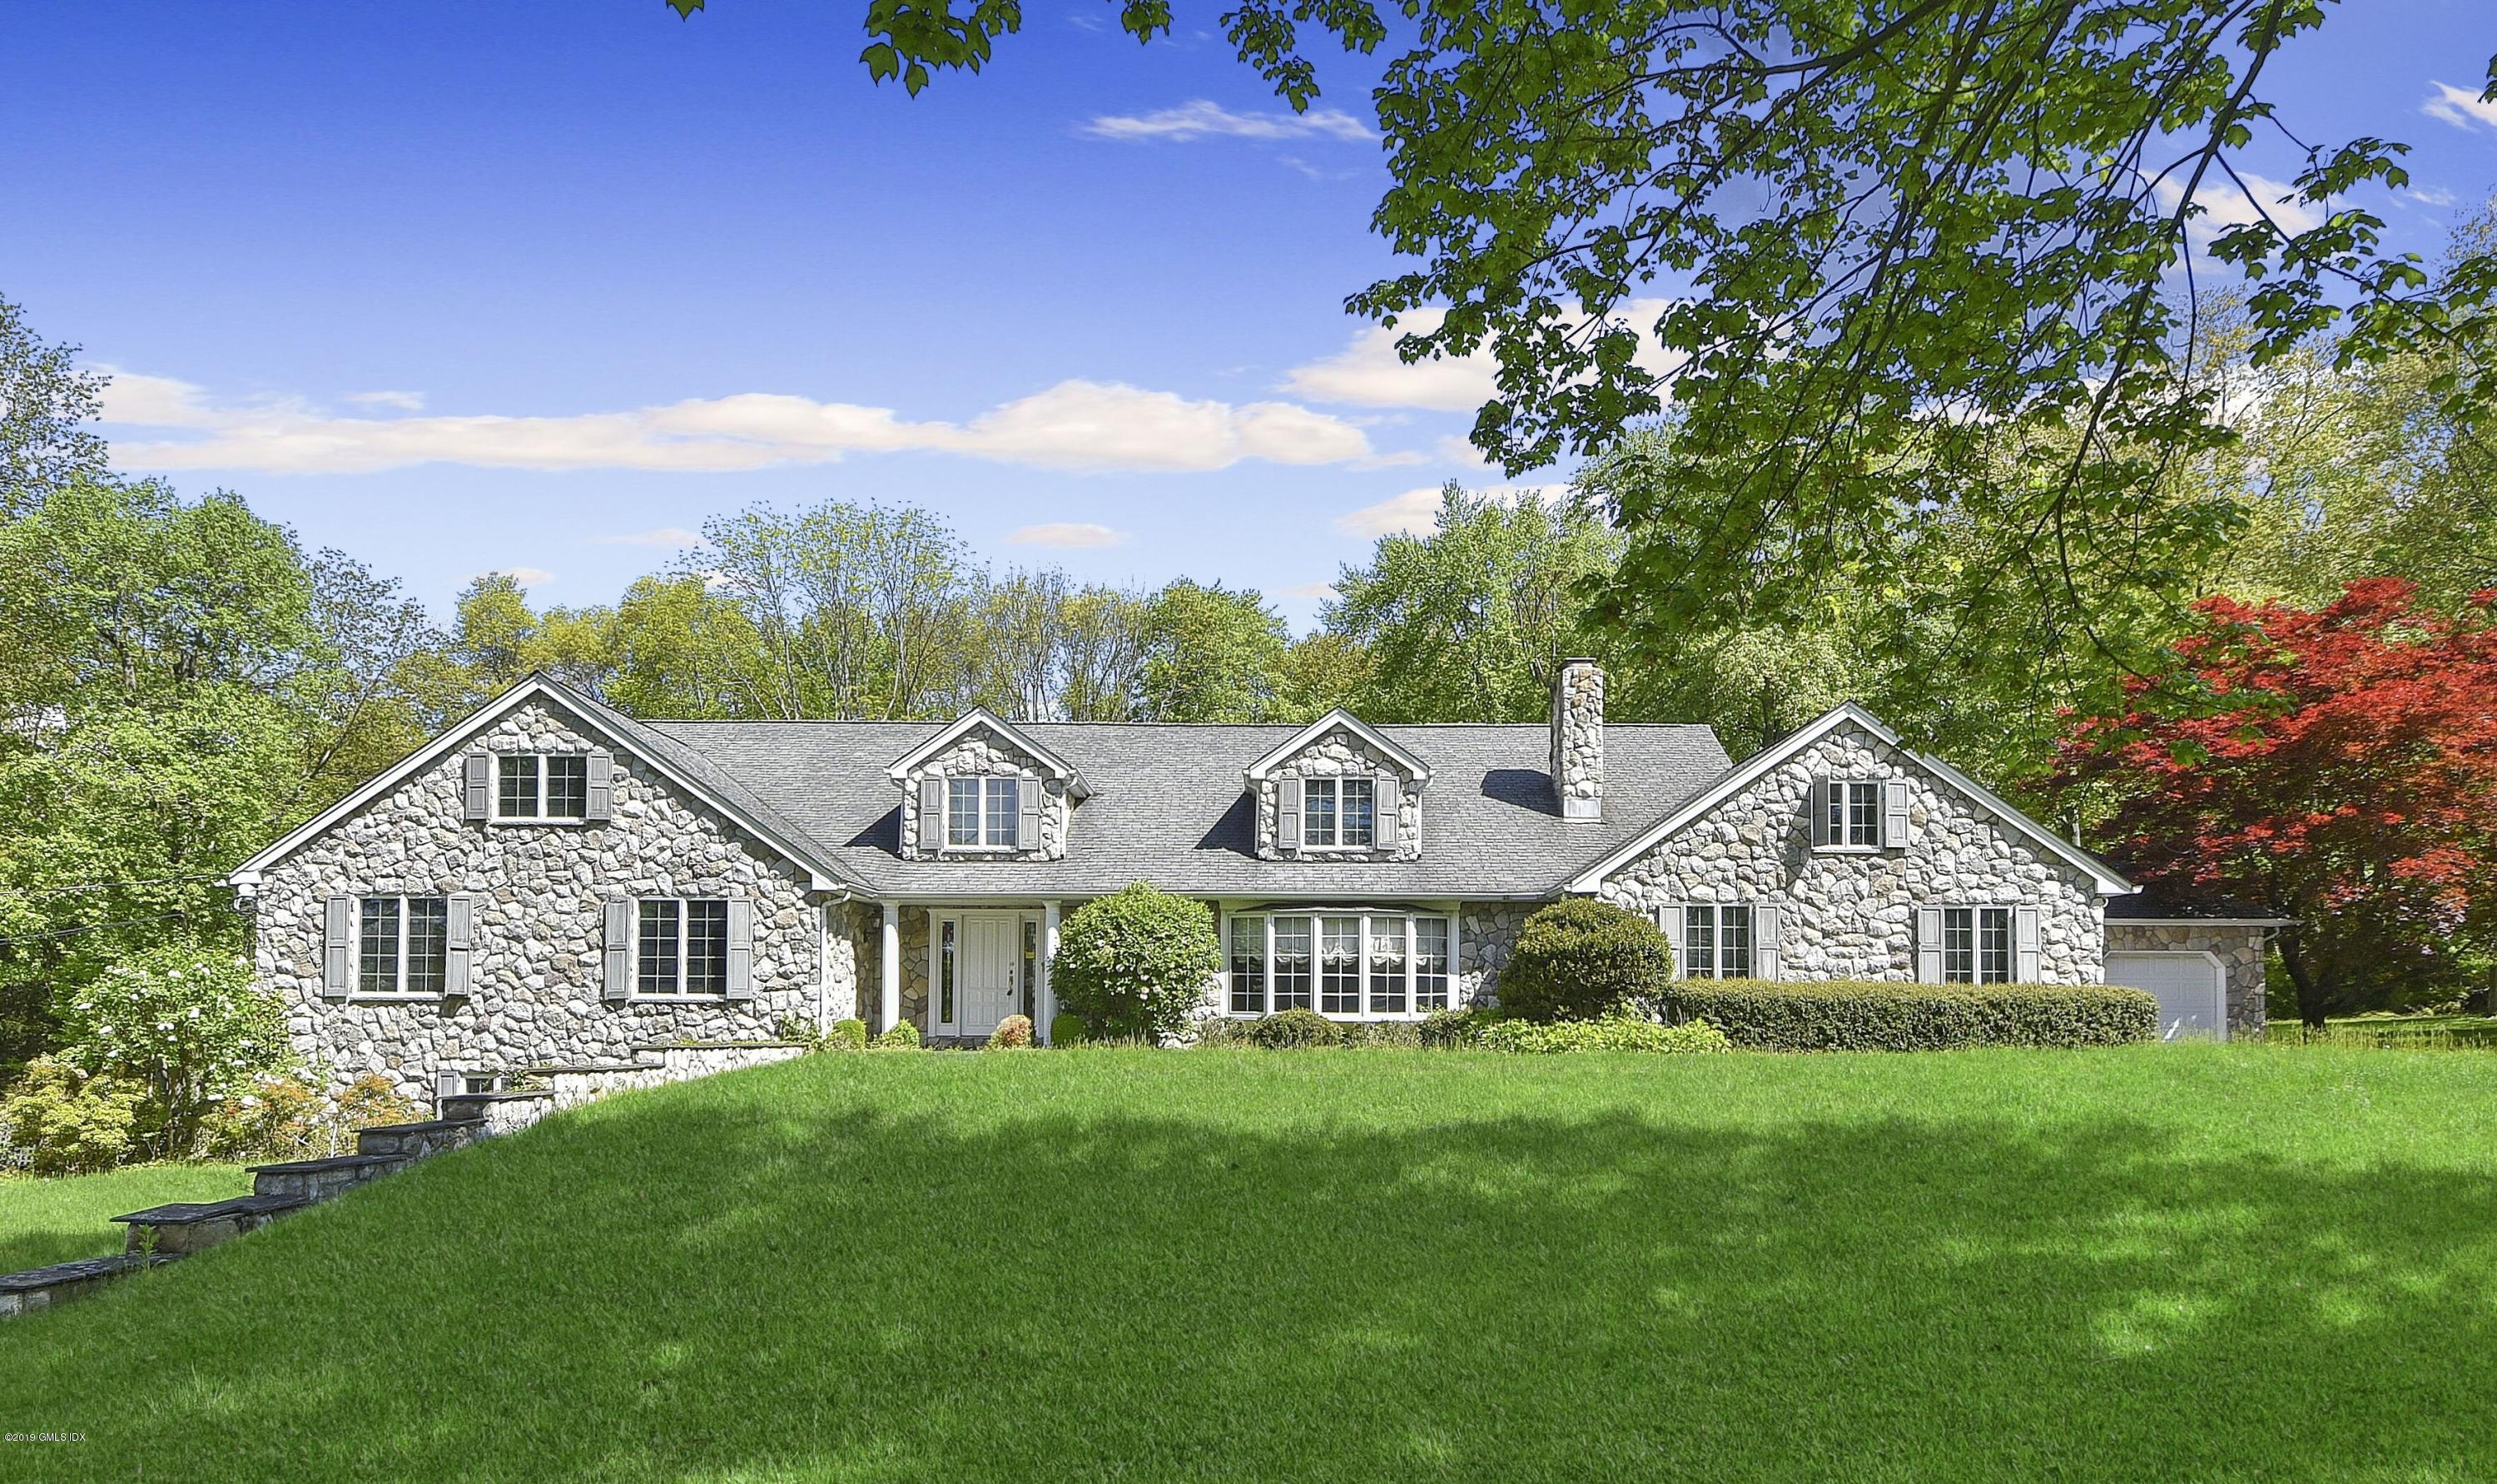 1 Tinker Lane,Greenwich,Connecticut 06830,5 Bedrooms Bedrooms,5 BathroomsBathrooms,Single family,Tinker,106670